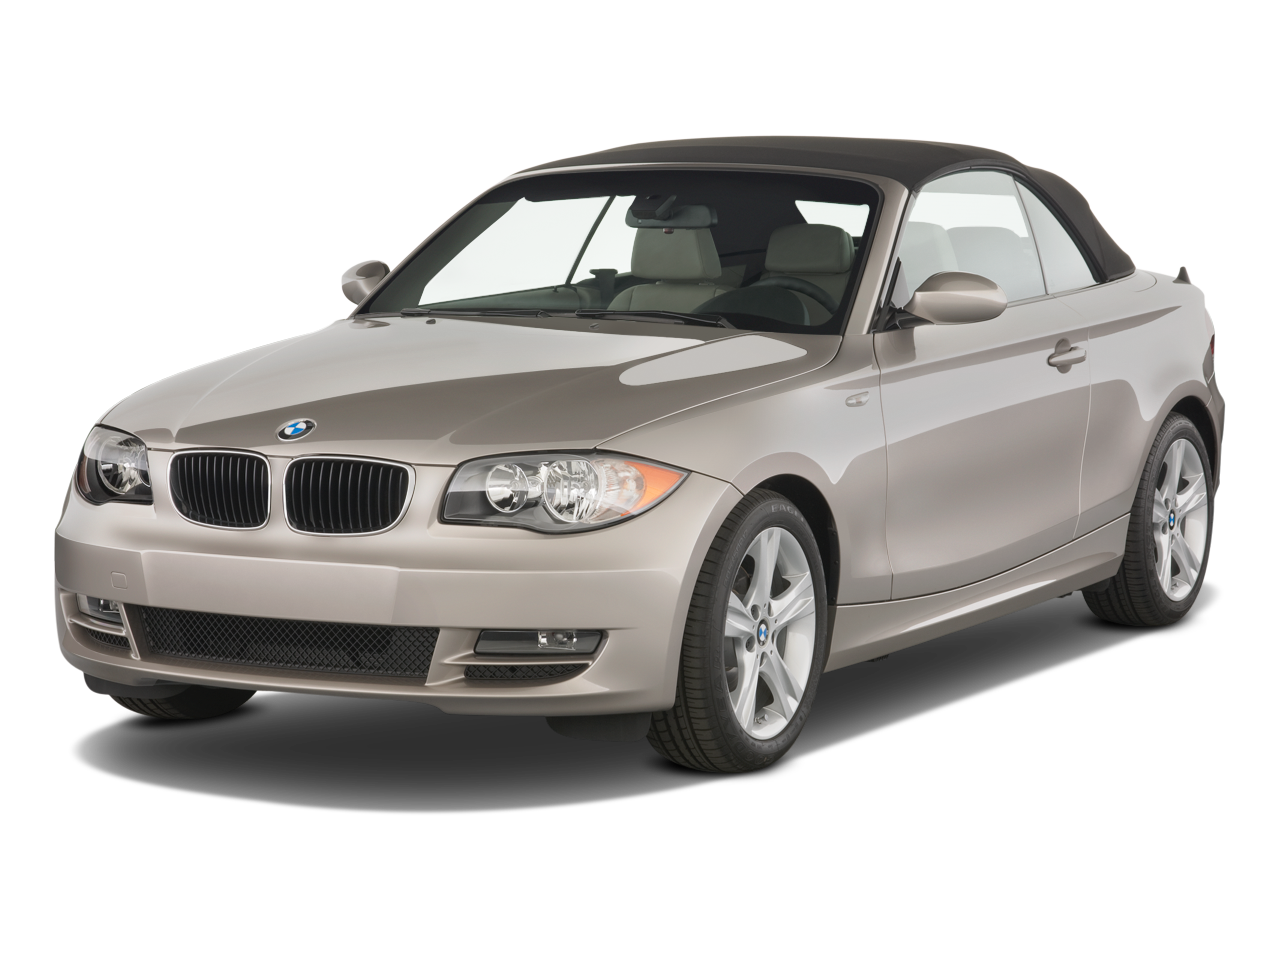 2009 Bmw 128i Convertible Bmw Luxury Convertible Review